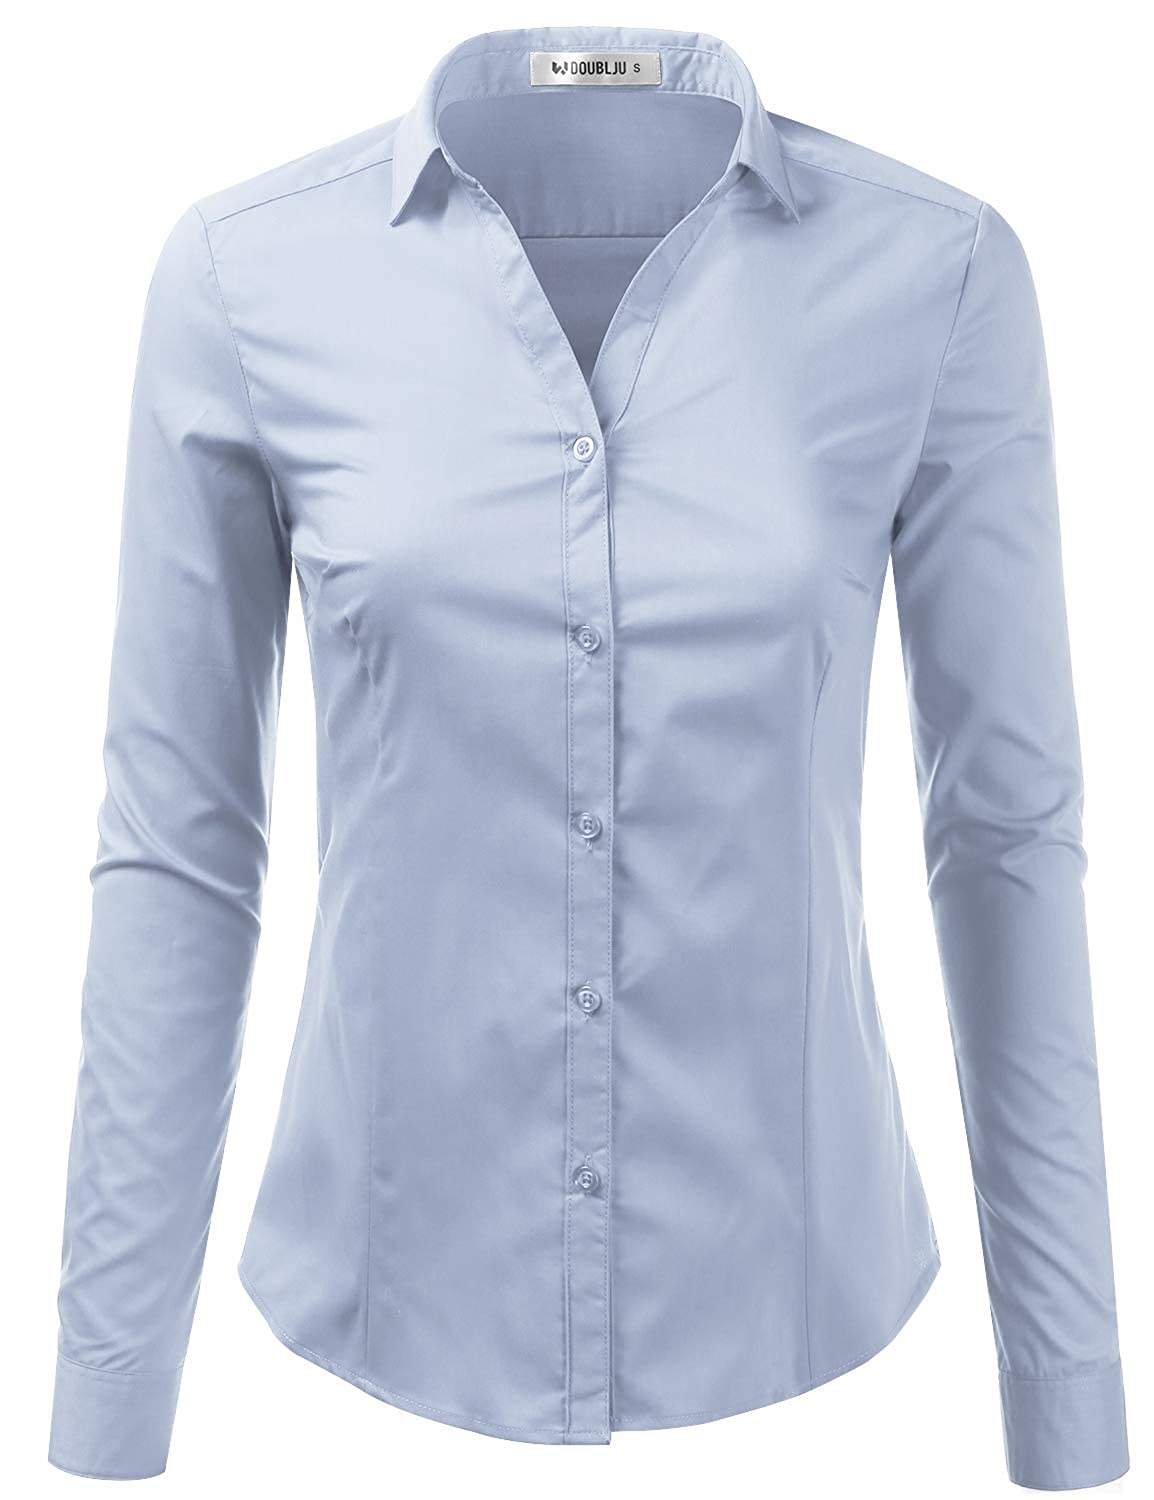 b875f93b6c87fa #CWTBLL031, CWTSTL068 - Basic Slim Fit Long Sleeve Button Down Collared  Shirts For Women With Plus Size